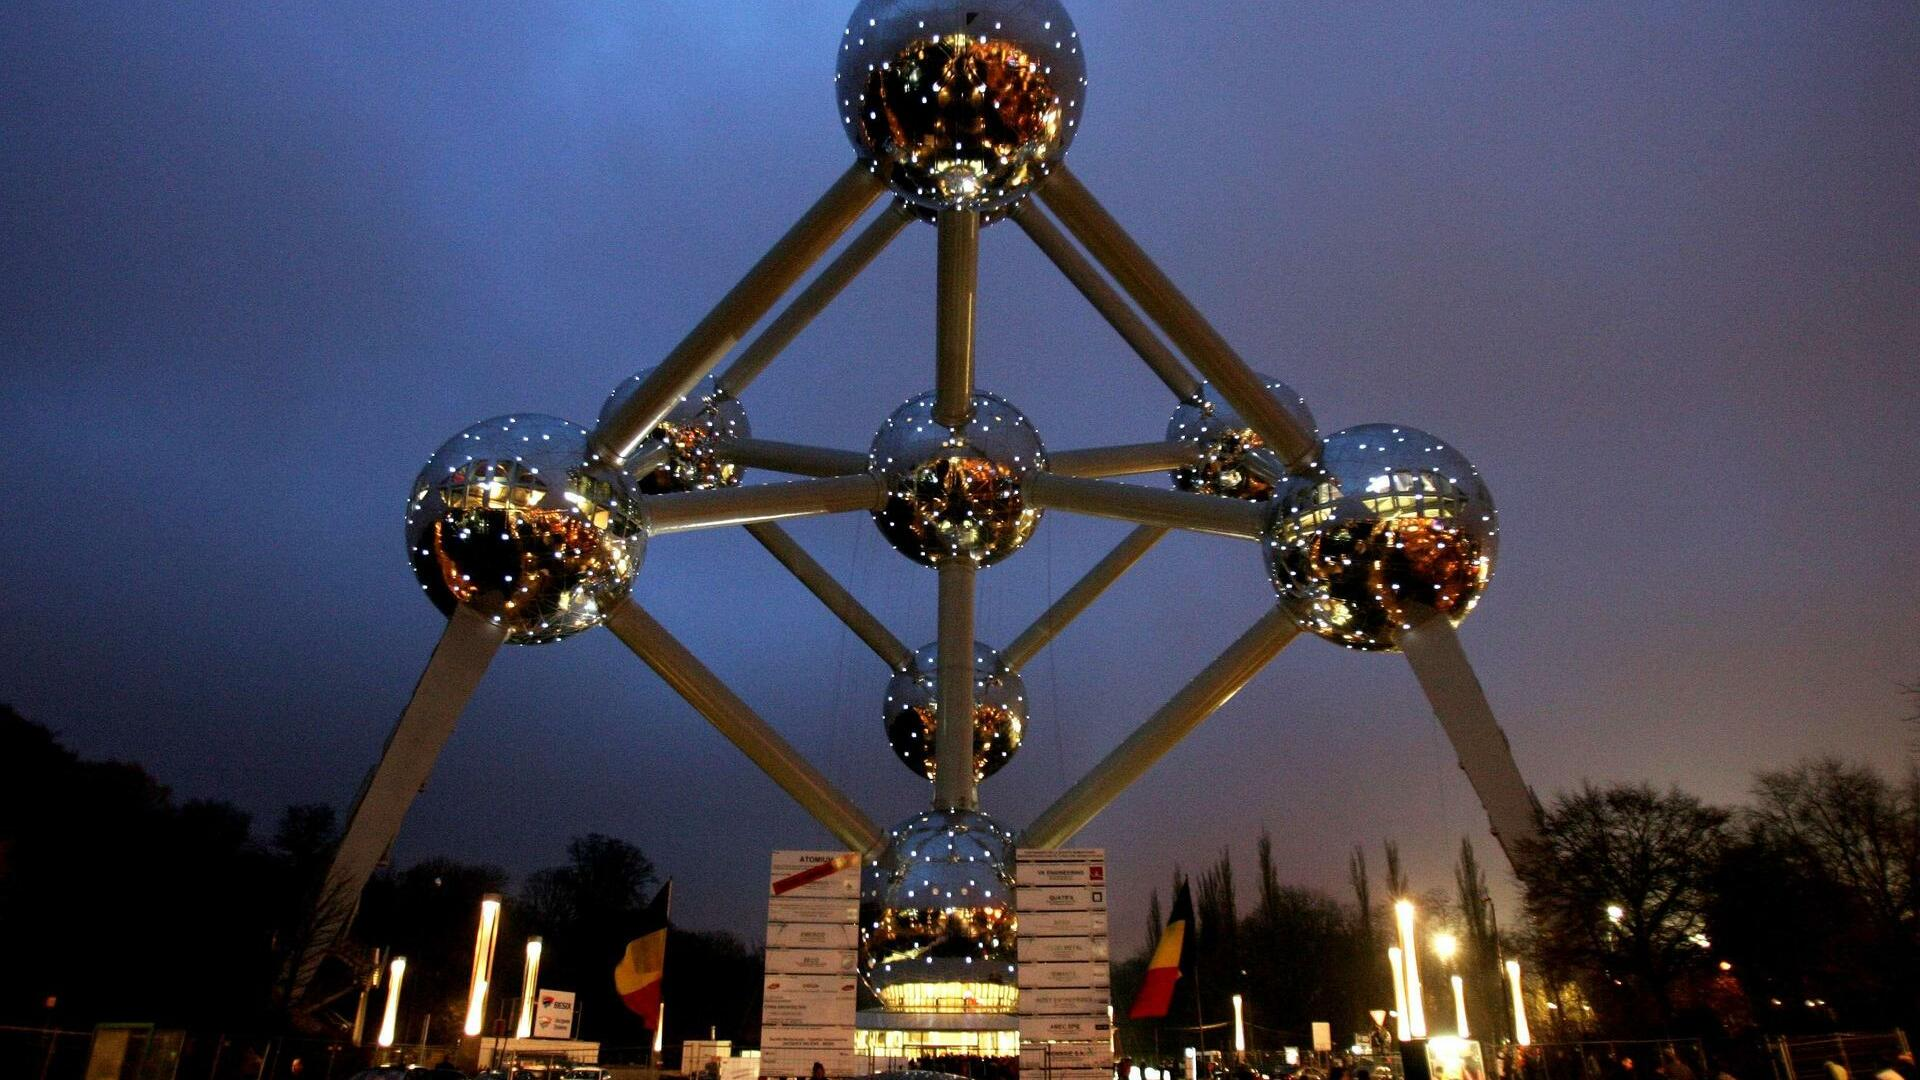 Da Atomium in Belgien Quelle: REUTERS